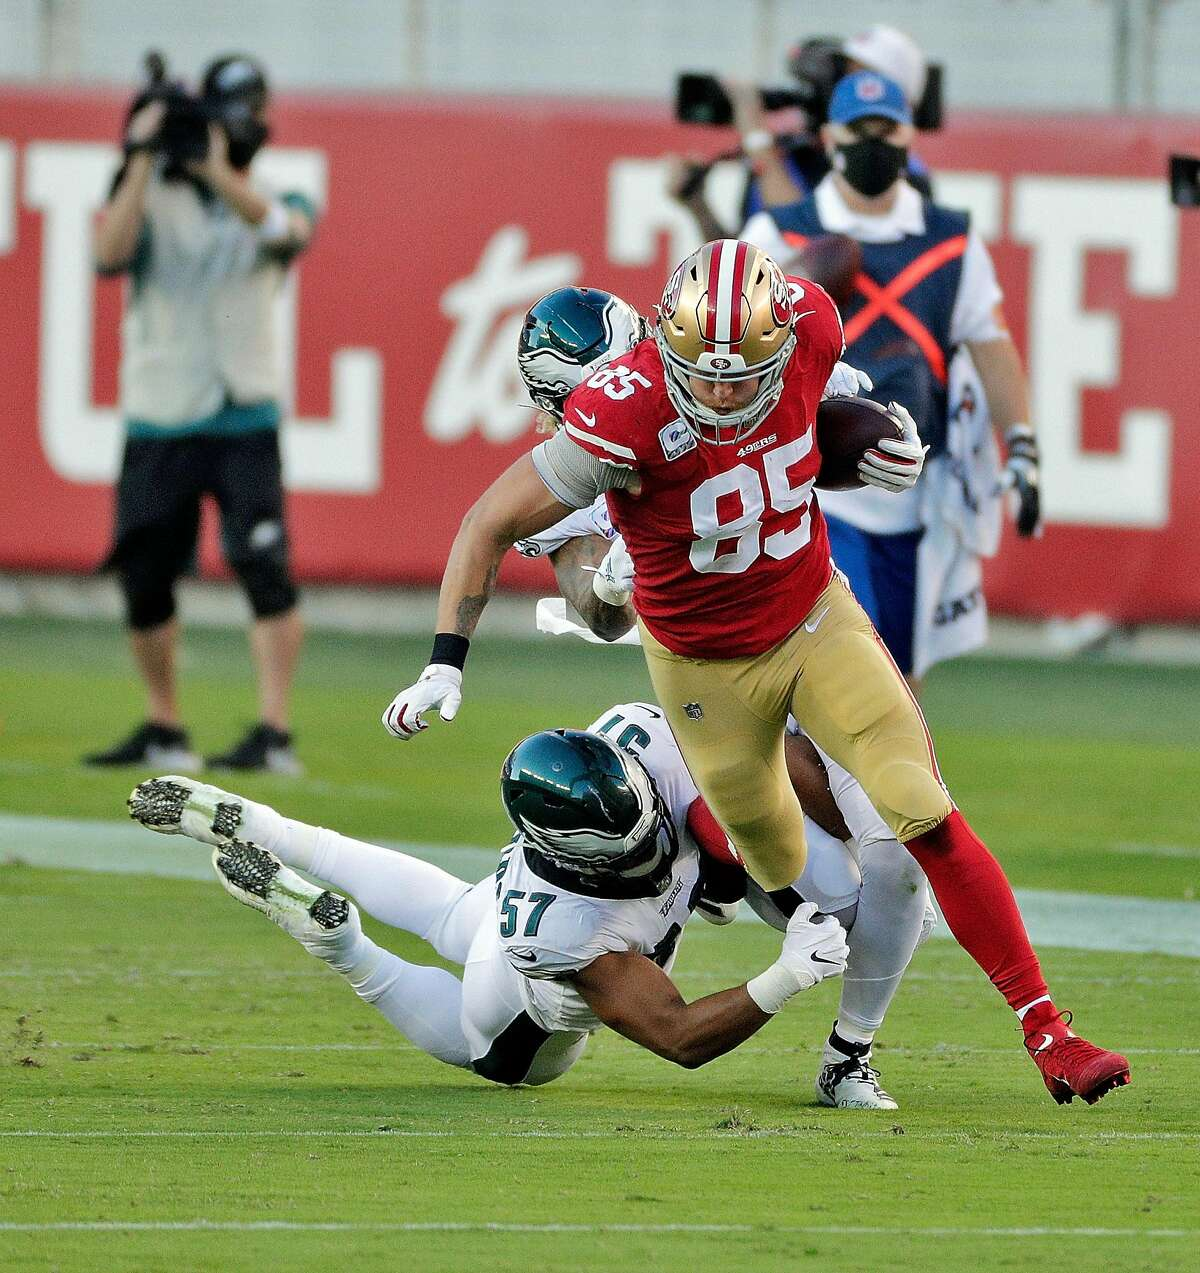 George Kittle (85) evades a tackle by T. J. Edwards (57) In the first half as the San Francisco 49ers played the Philadelphia Eagles at Levi's Stadium in Santa Clara, Calif., on Sunday, October 4, 2020.